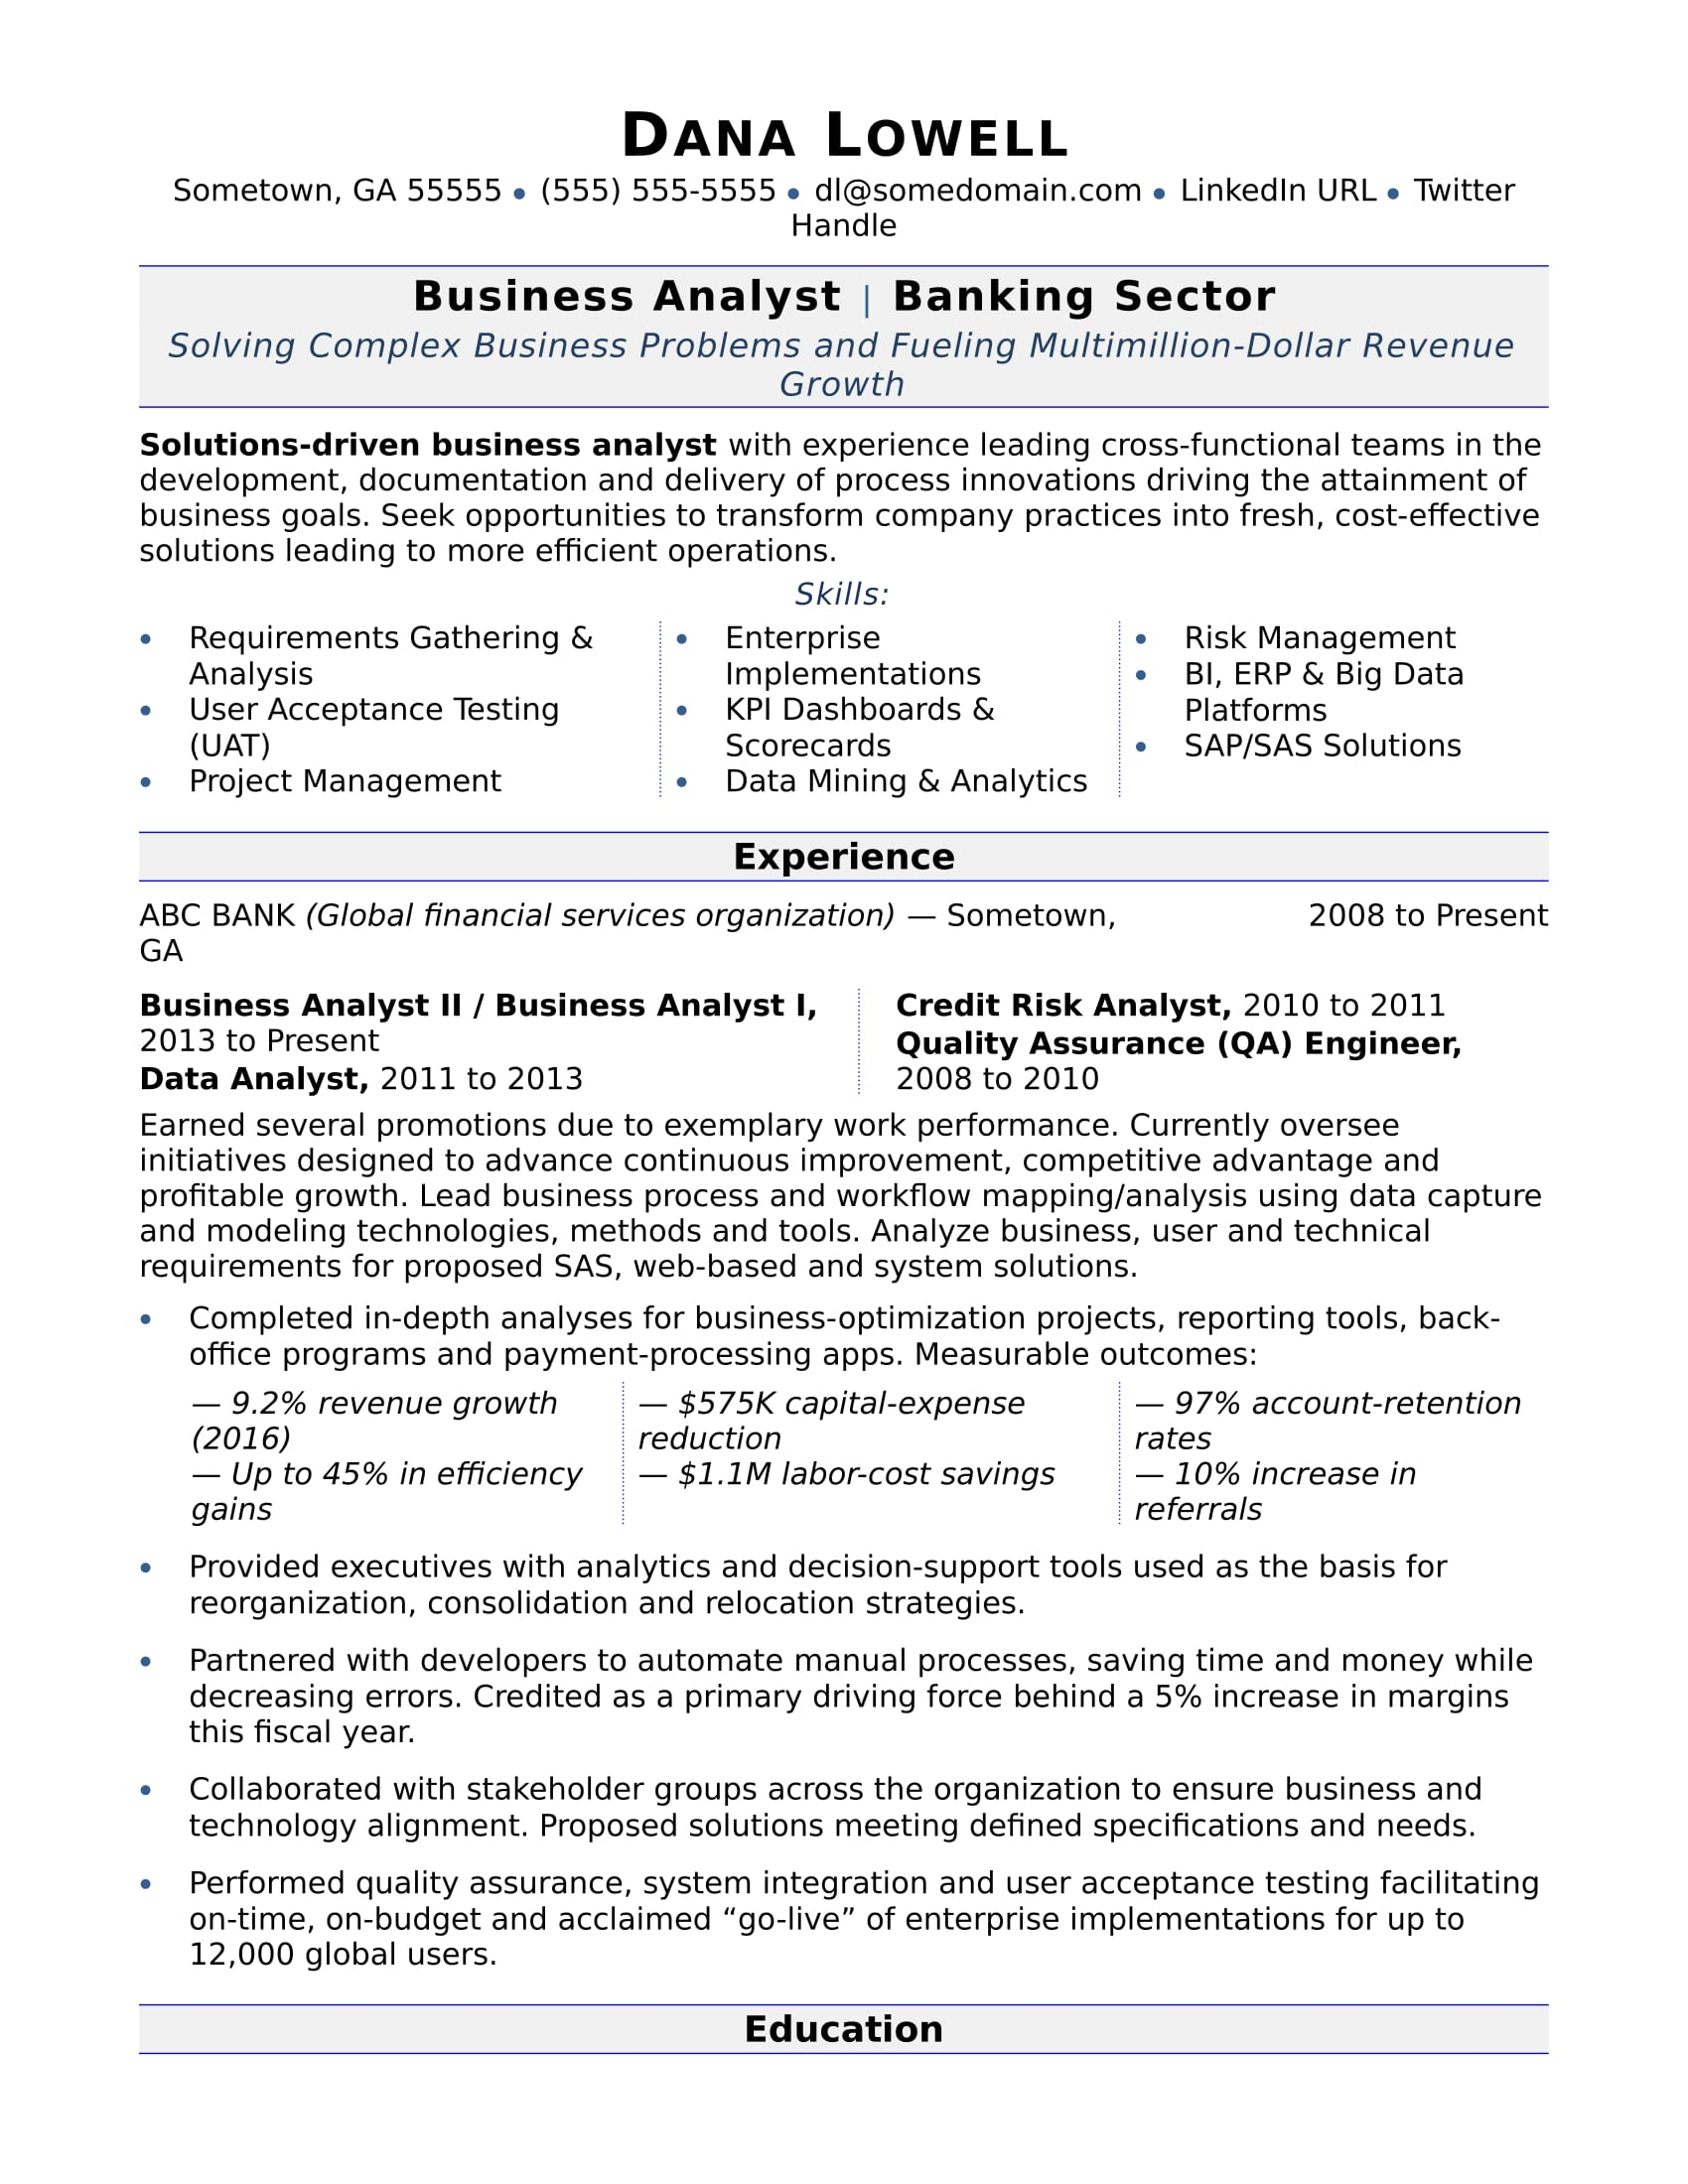 business analyst resume sample - Resume For Business Analyst Insurance Domain